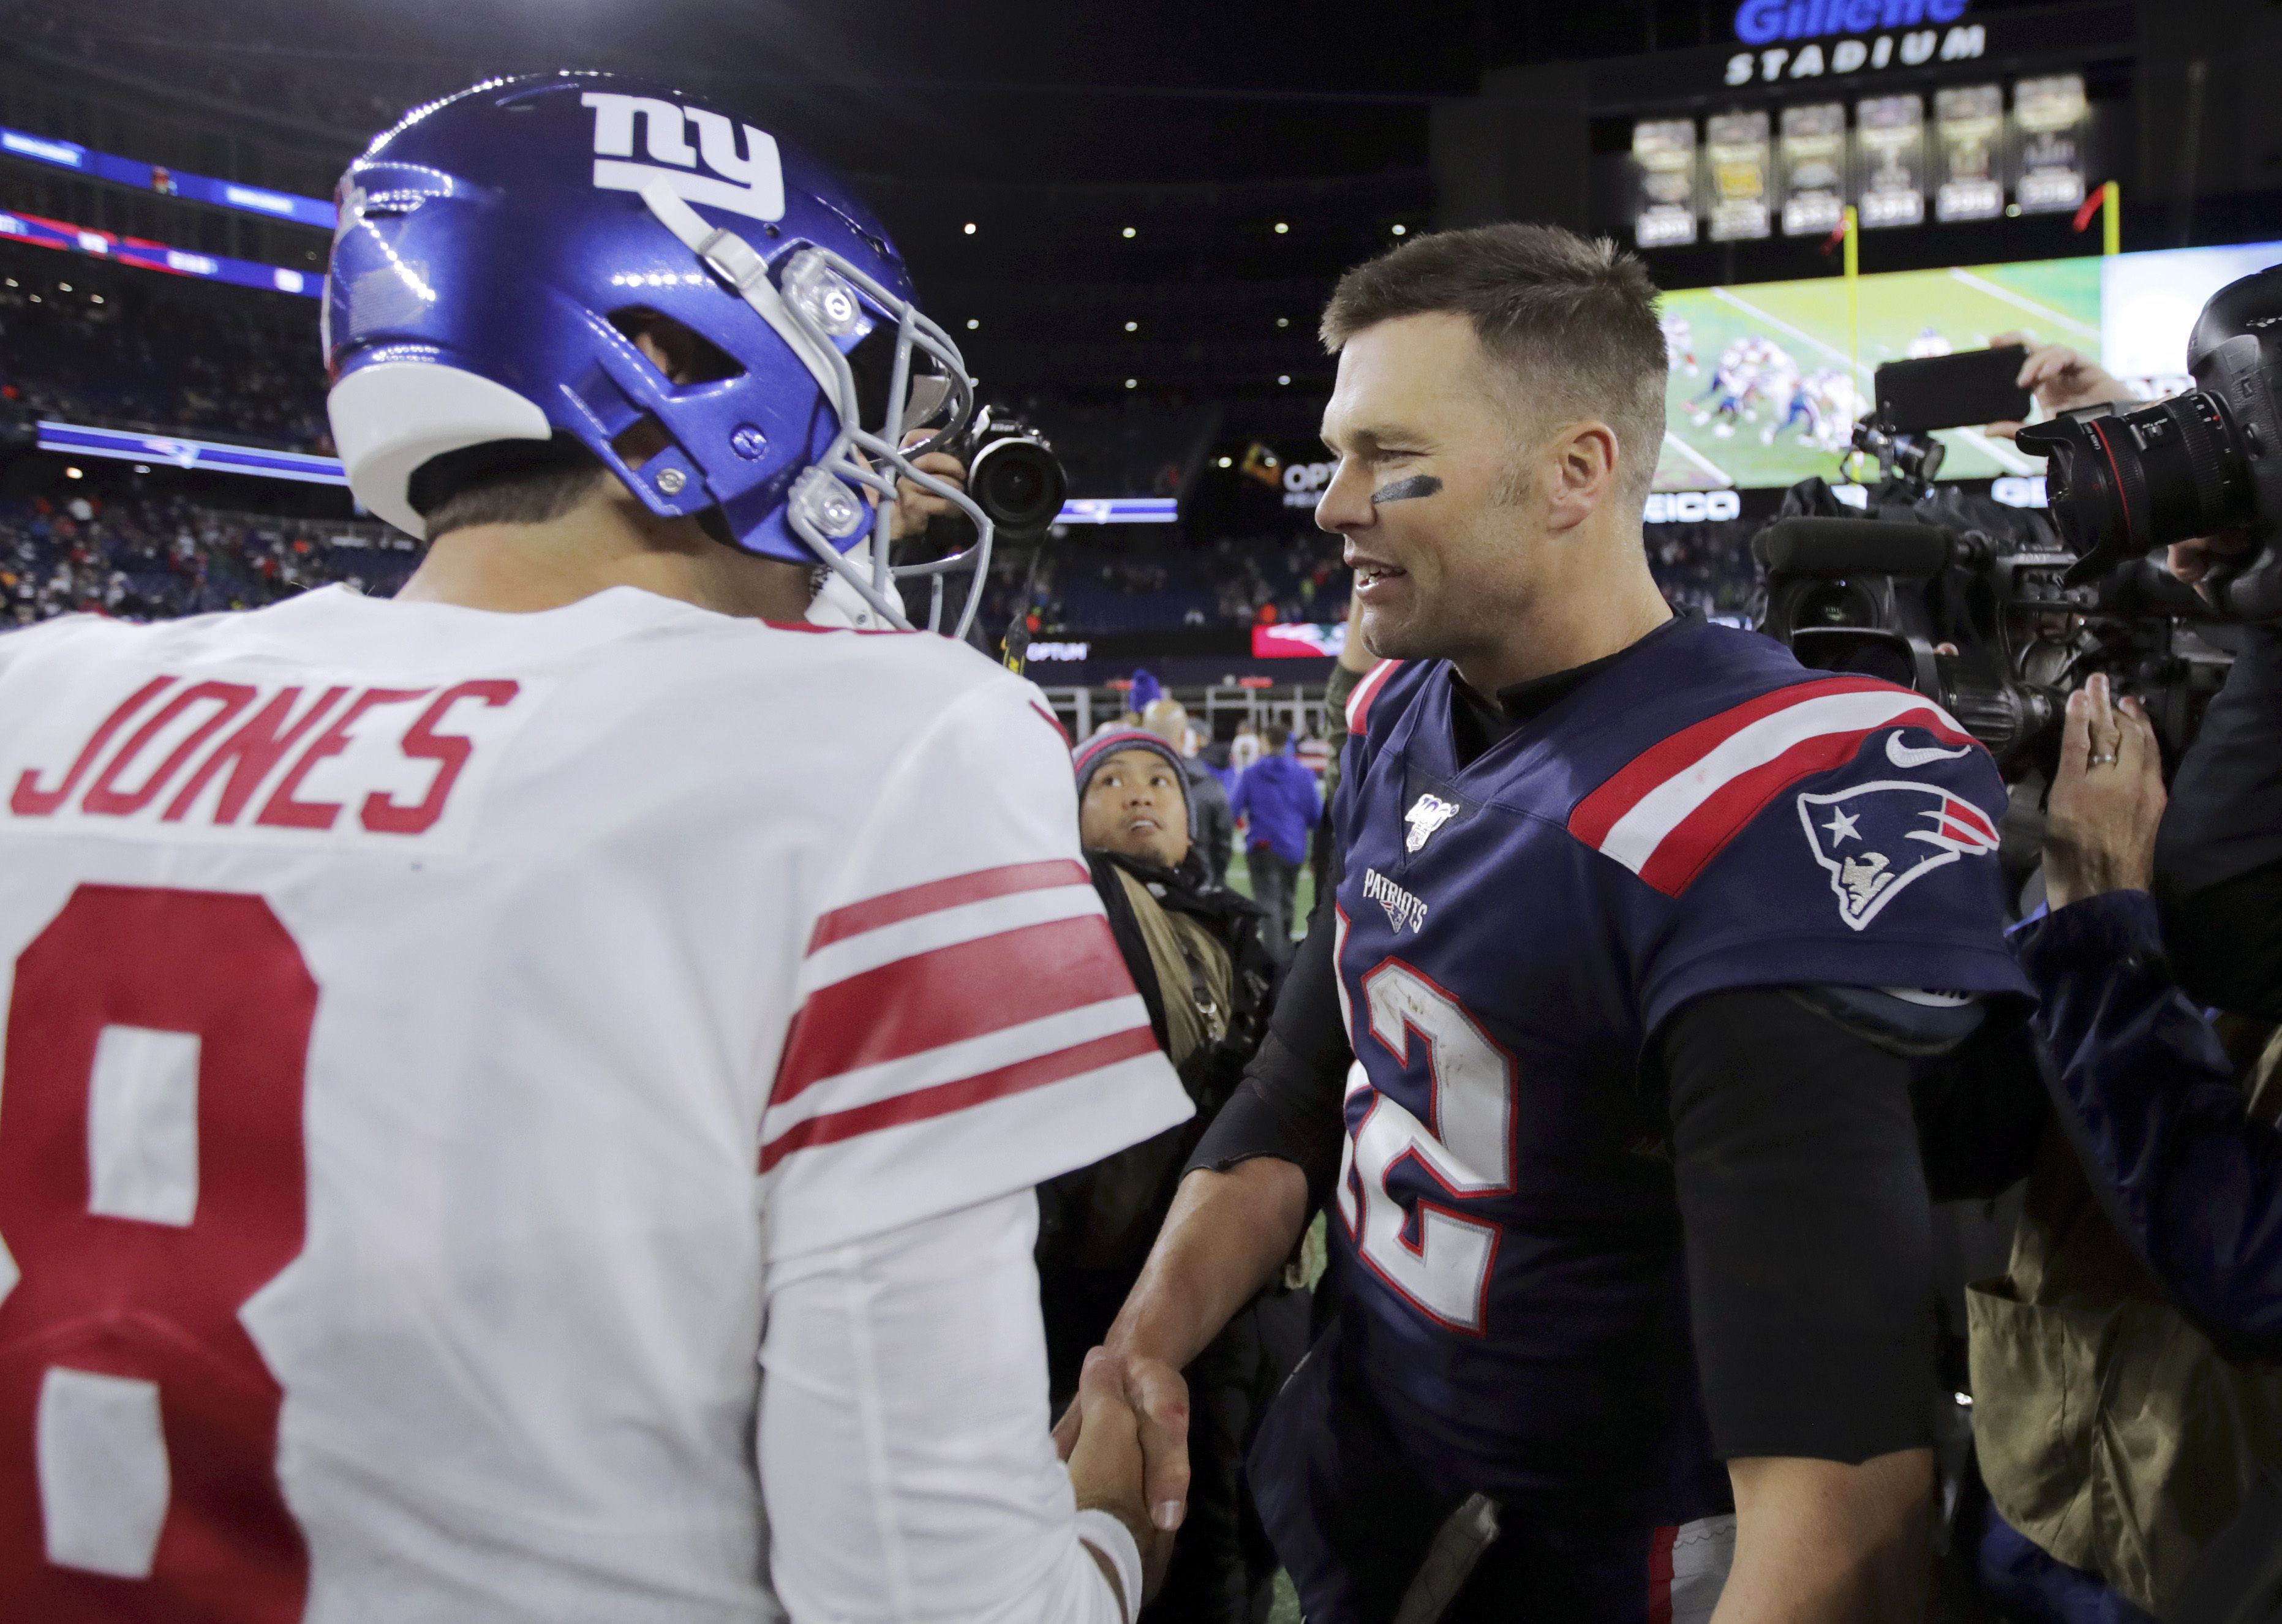 Nfl Schedule 2020 Here Is Giants Full Slate Week 1 On Monday Night Football When Do Tom Brady S Buccaneers Come To Metlife Dates Times For All Games Nj Com